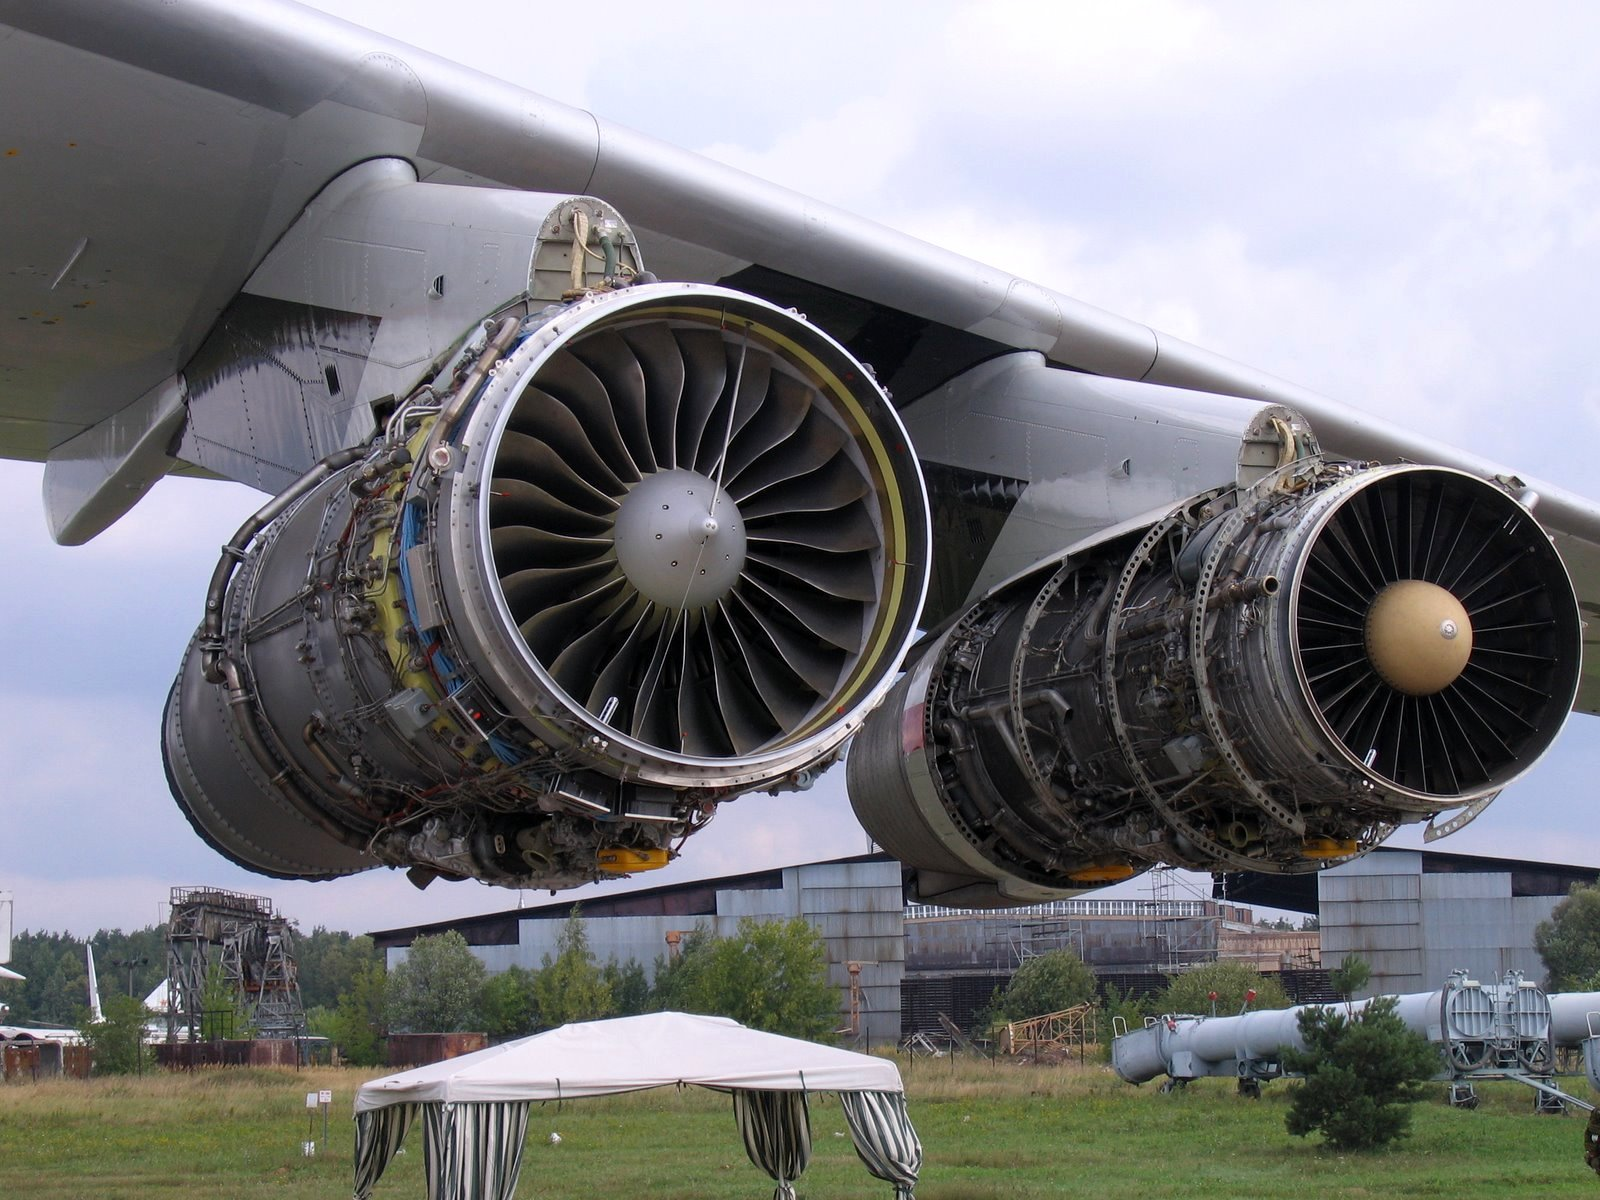 File il 76td soloviev aircraft engine jpg wikimedia commons - Jet engine wallpaper ...